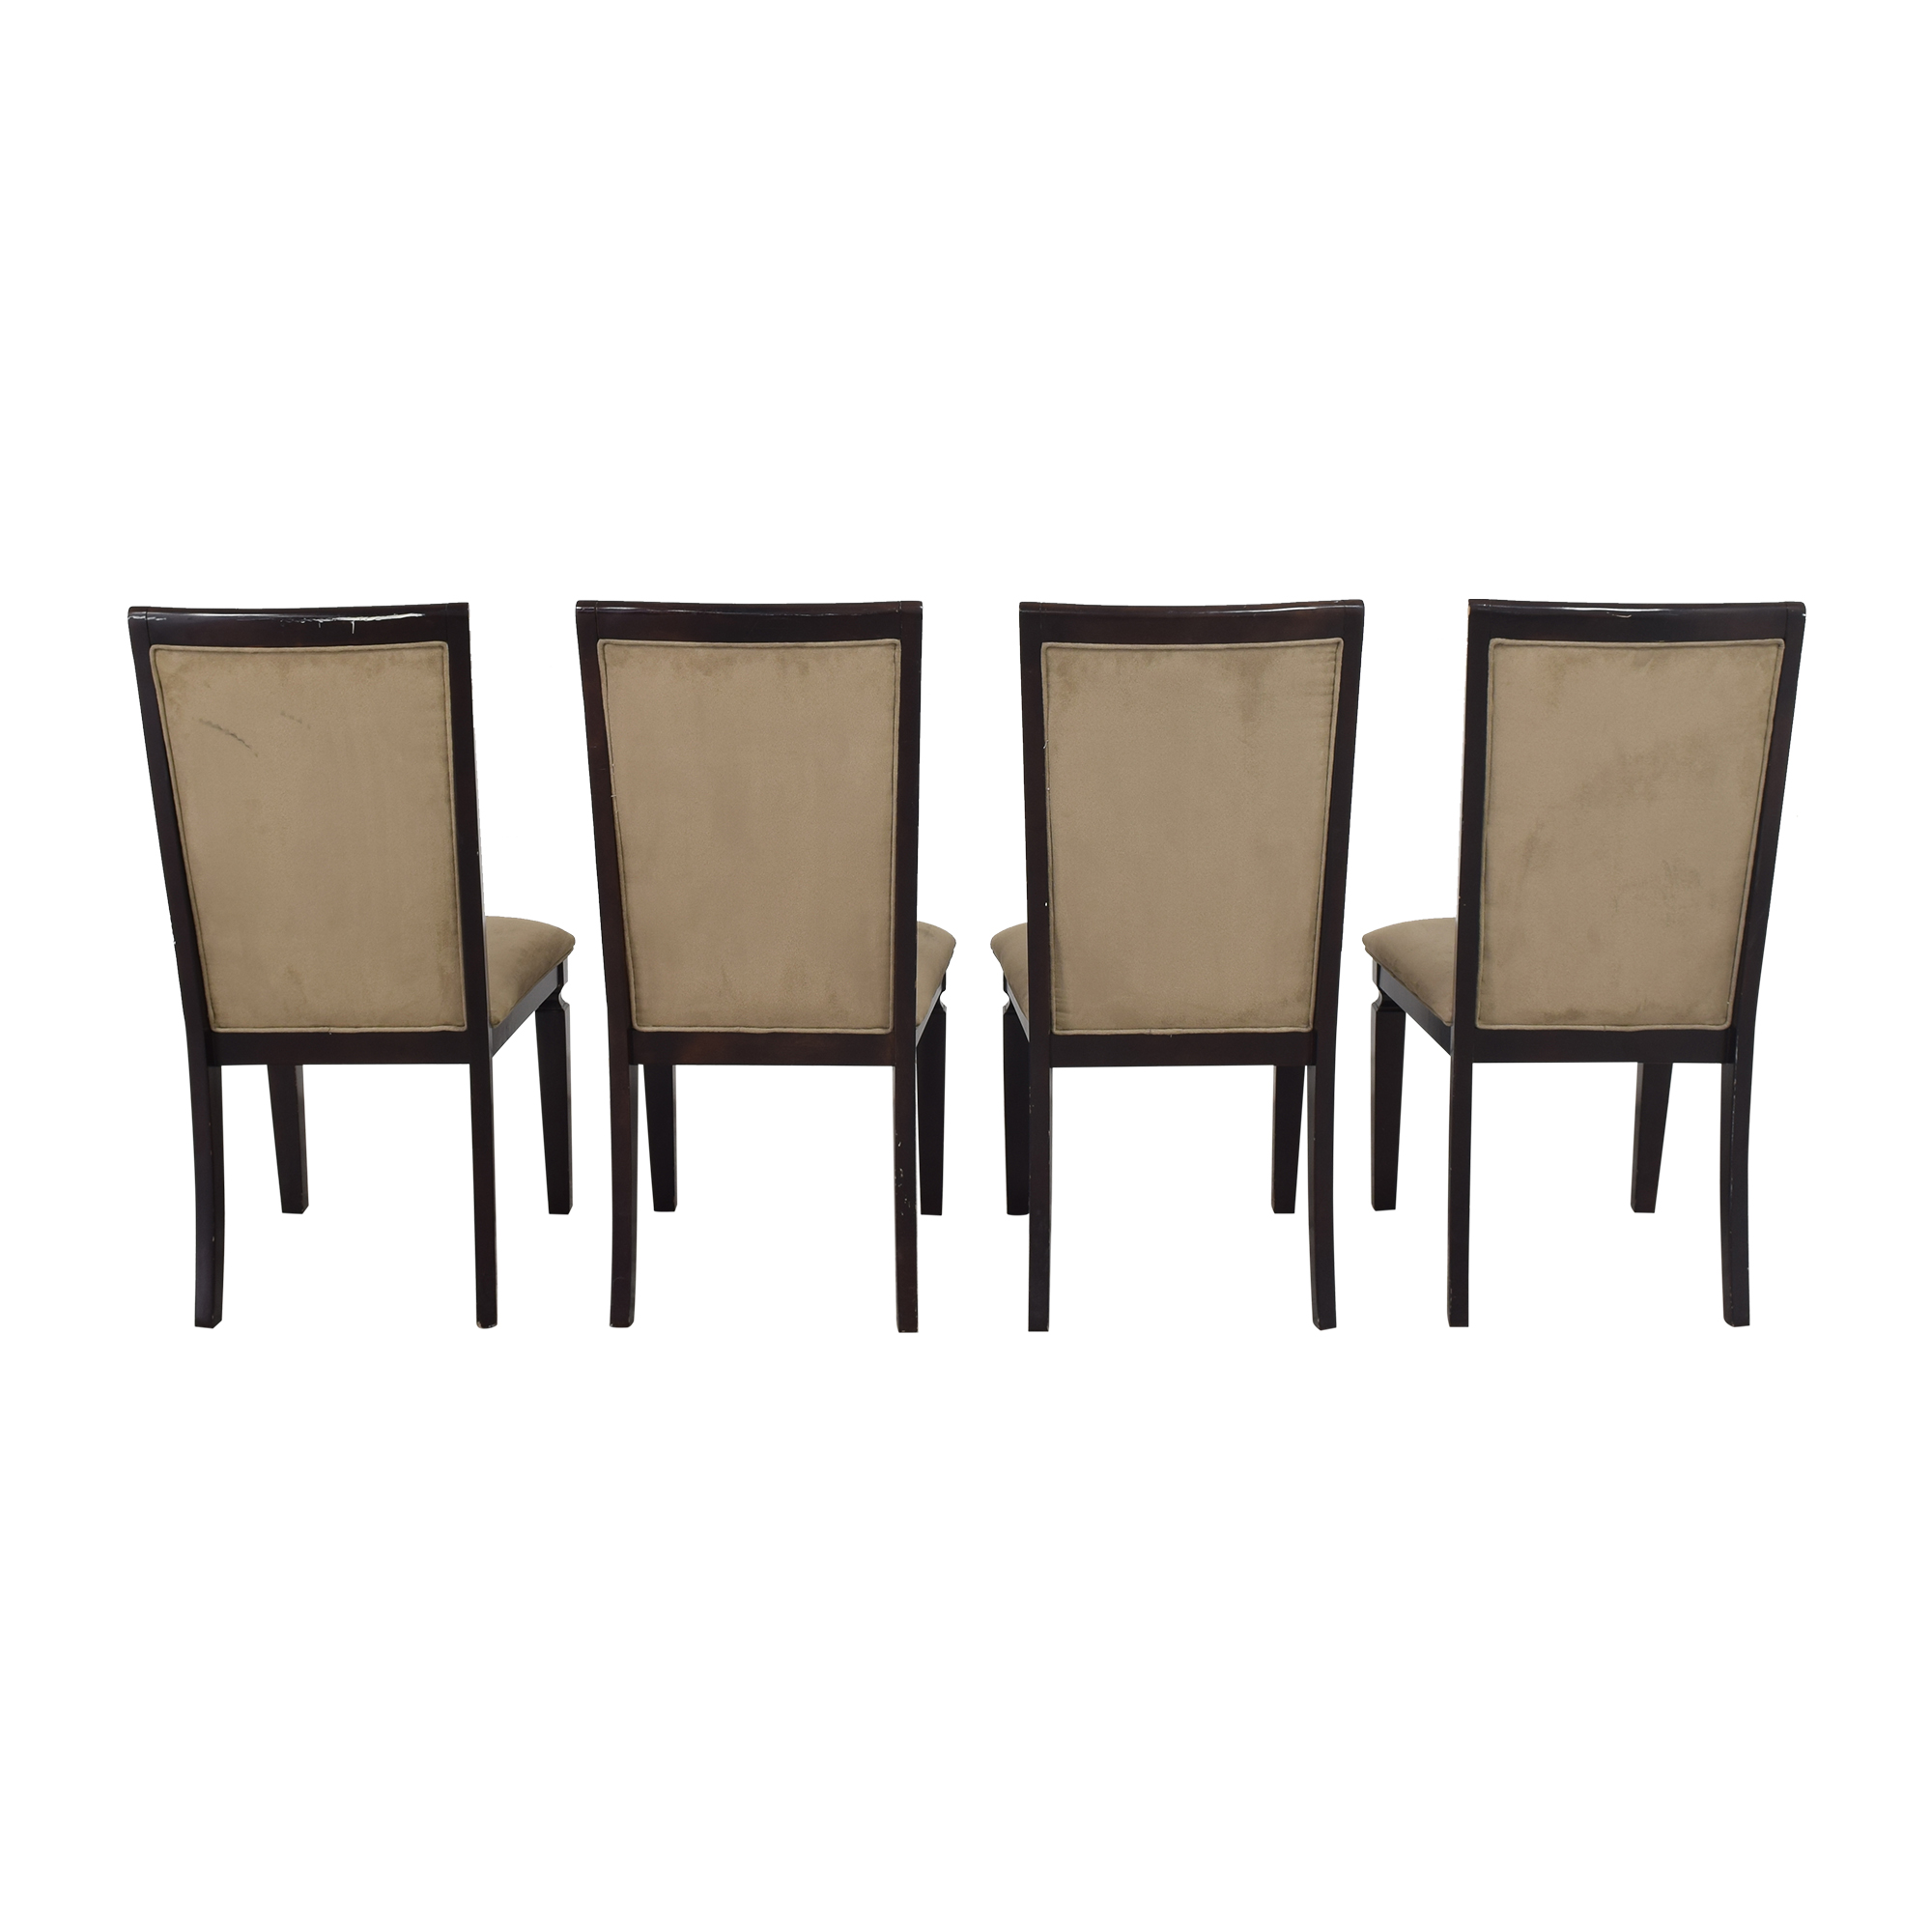 Homelegance Furniture Homelegance Furniture Dining Side Chairs ma